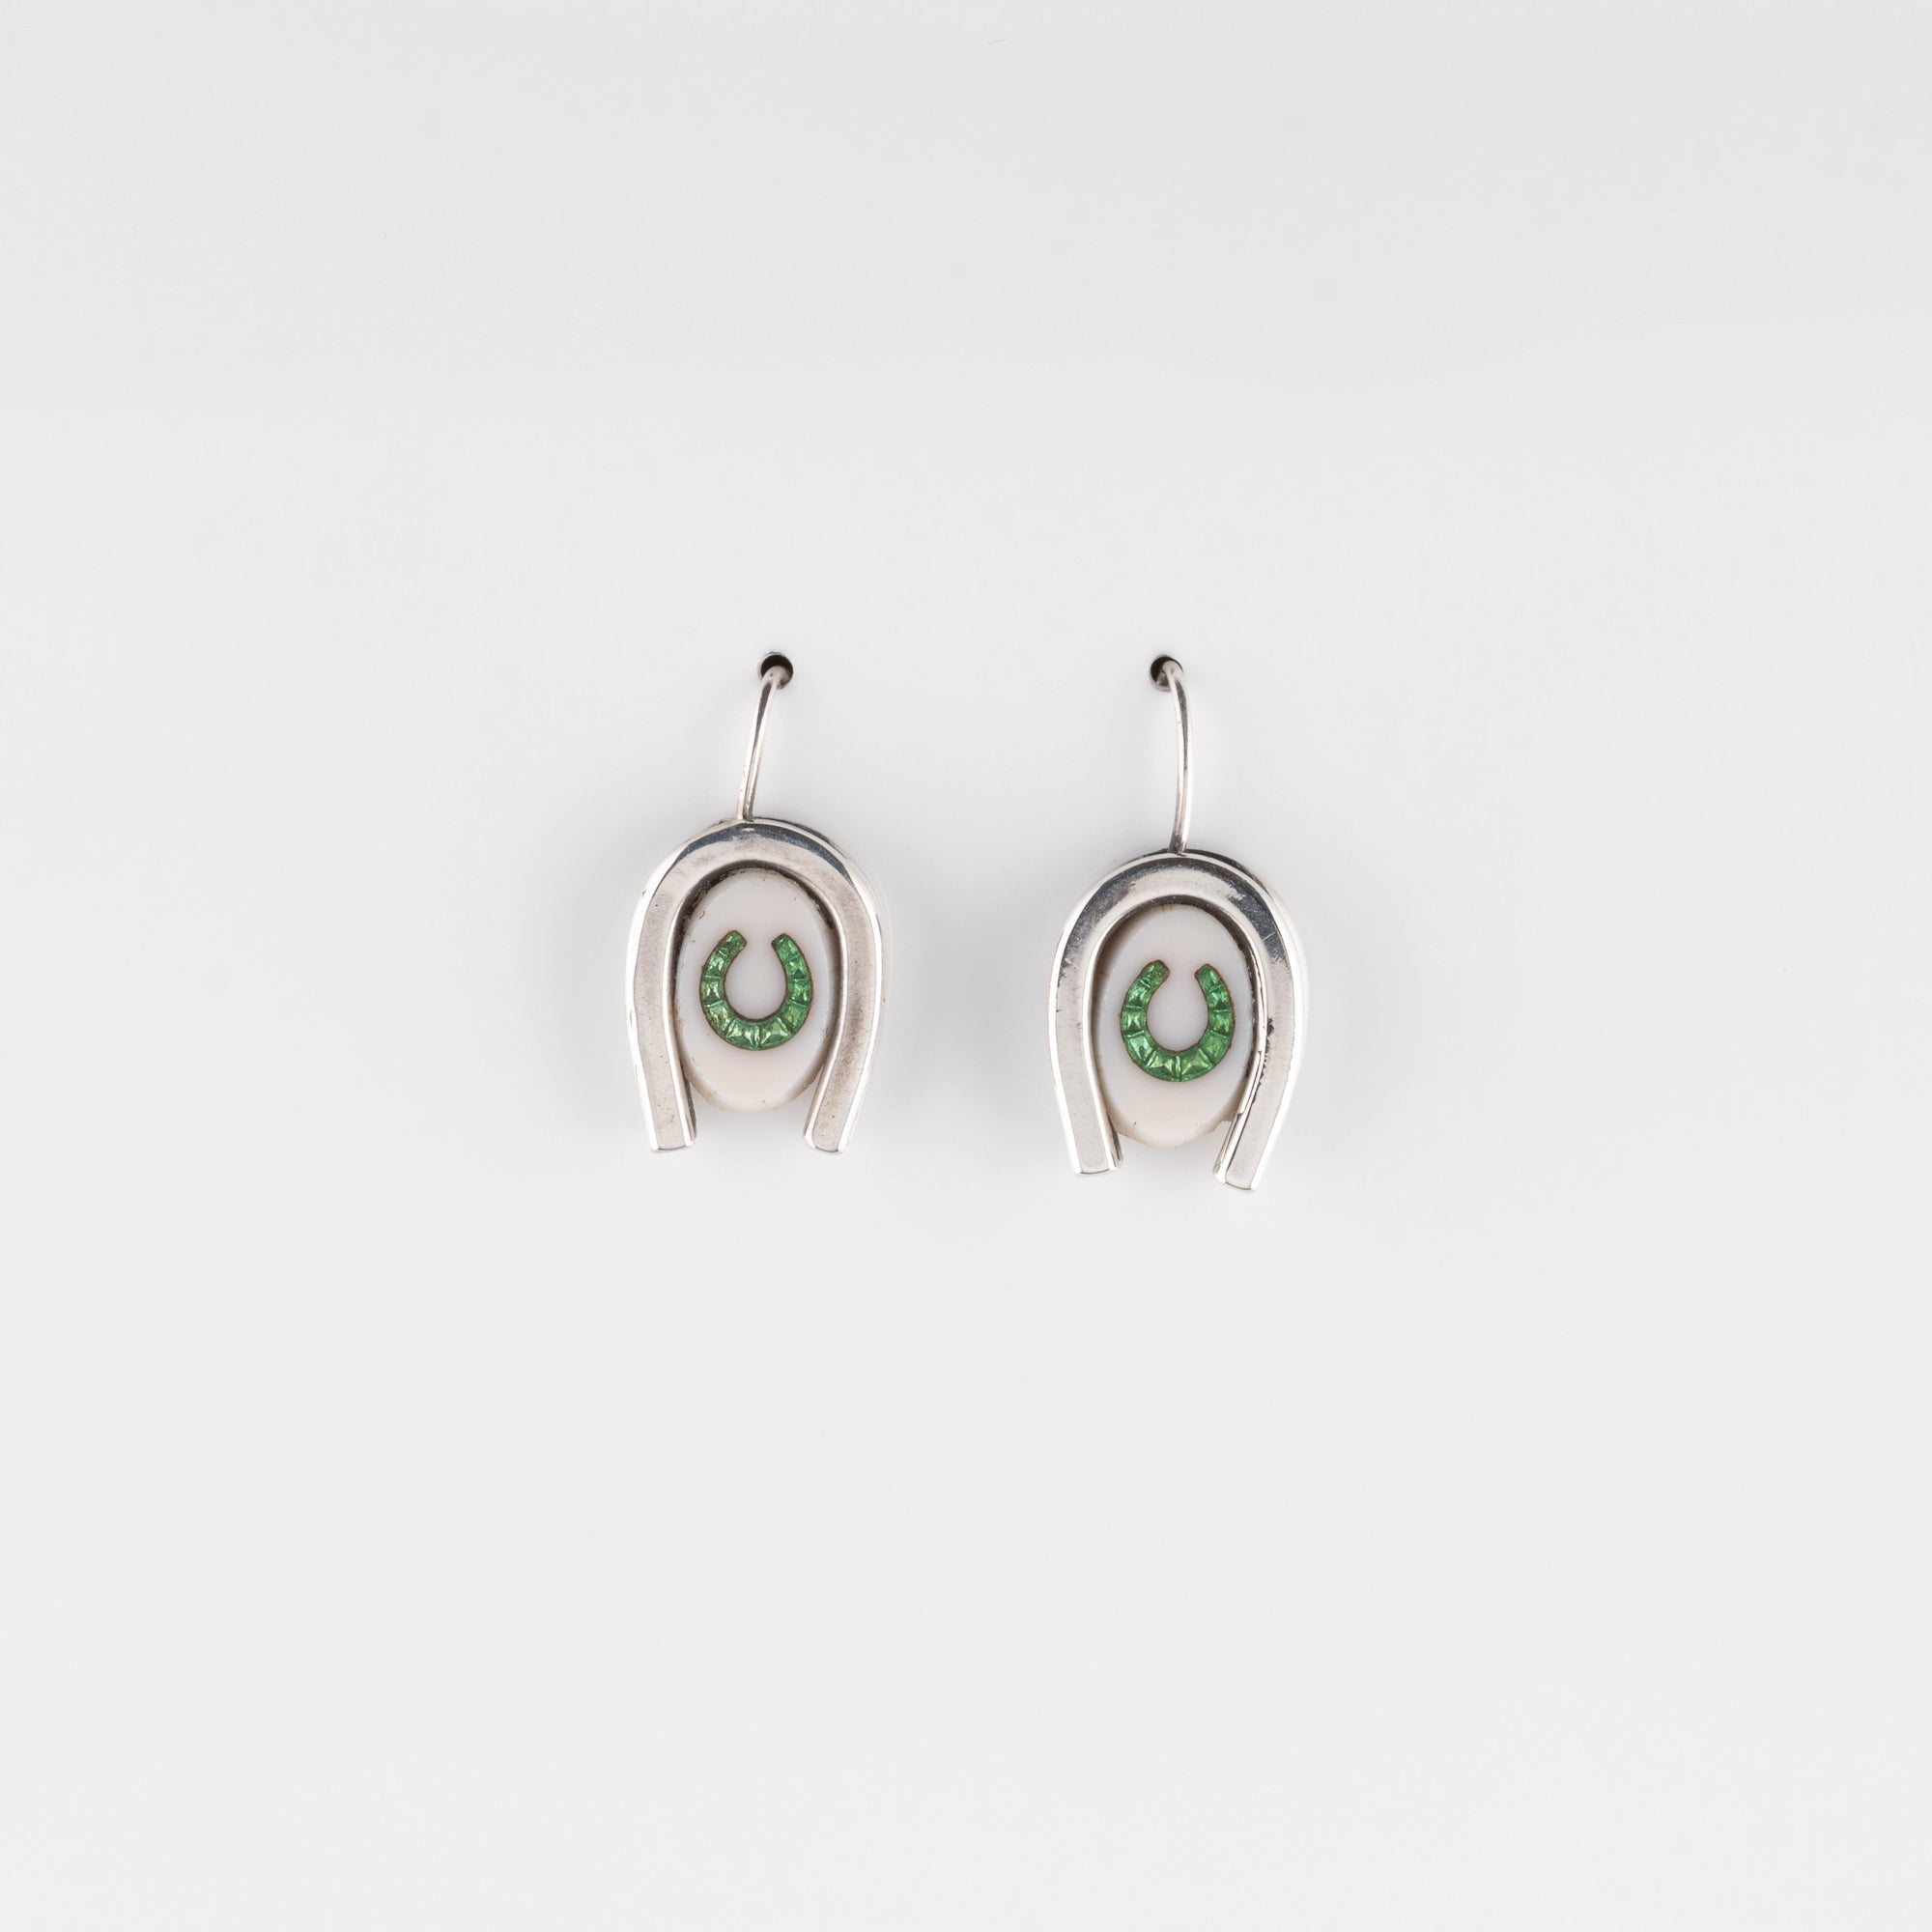 DOUBLE LUCK // SILVER EARRINGS // WHITE & GREEN